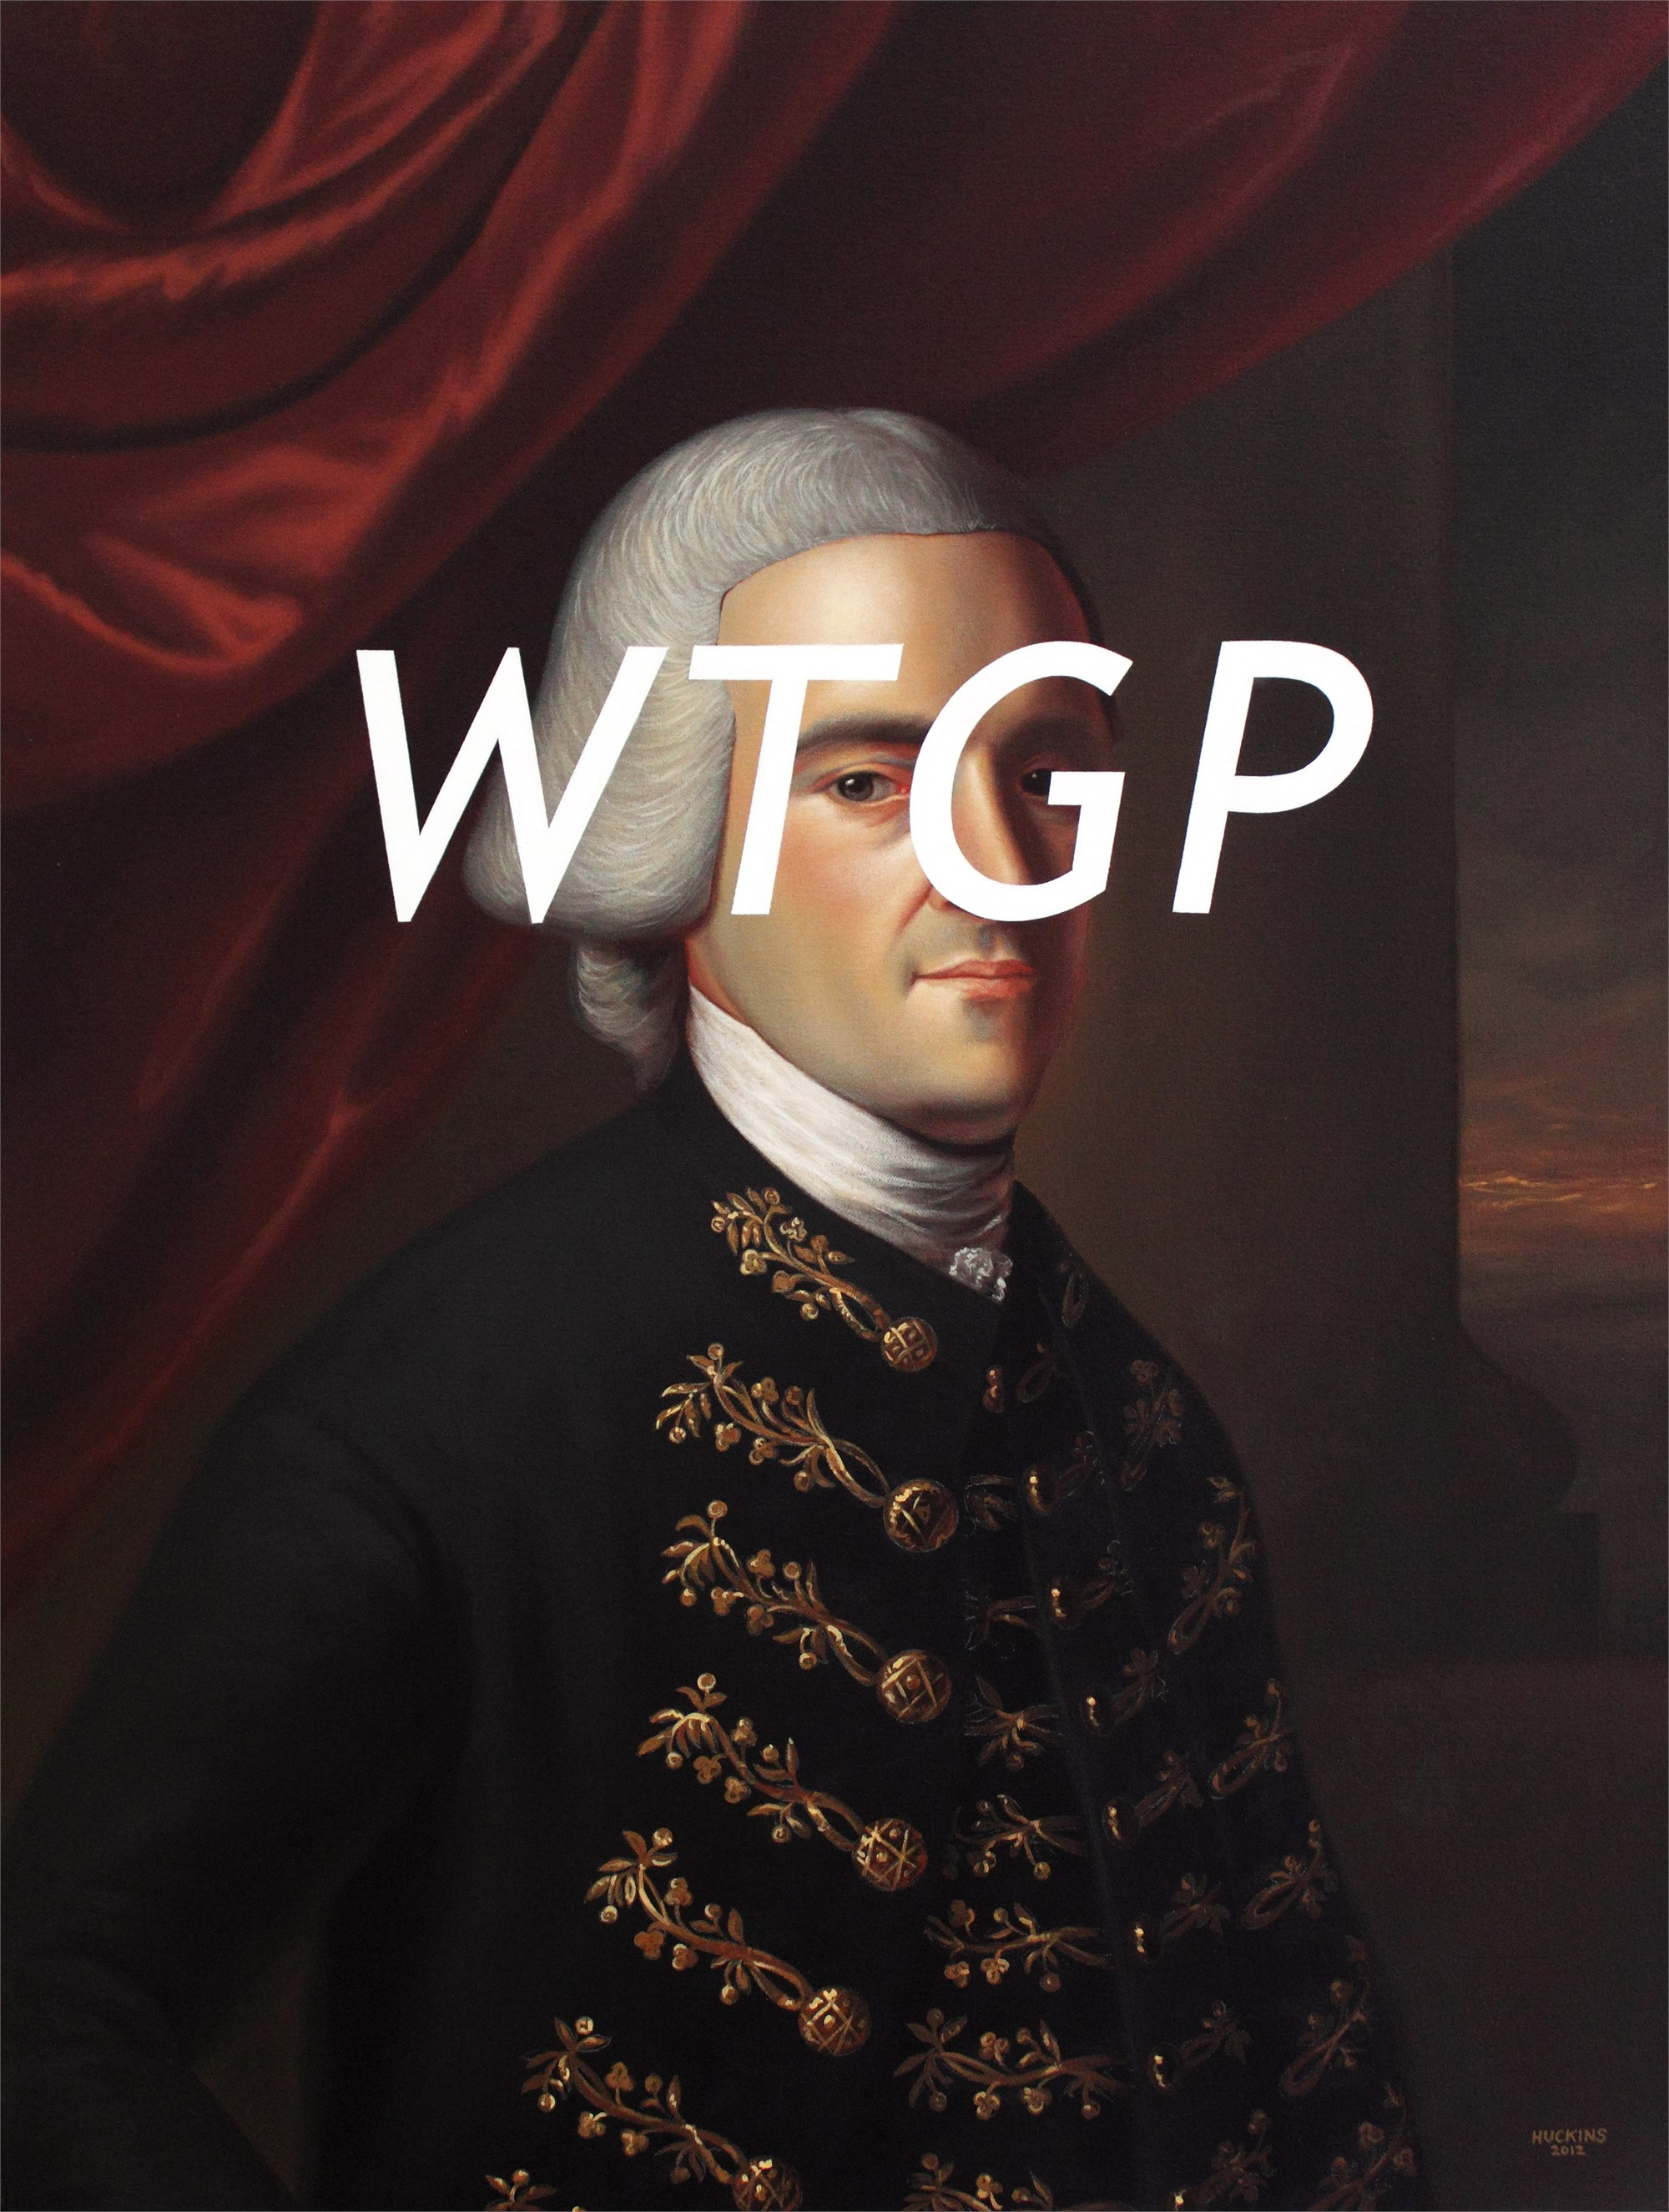 John Hancock: Want To Go Private? by Shawn Huckins